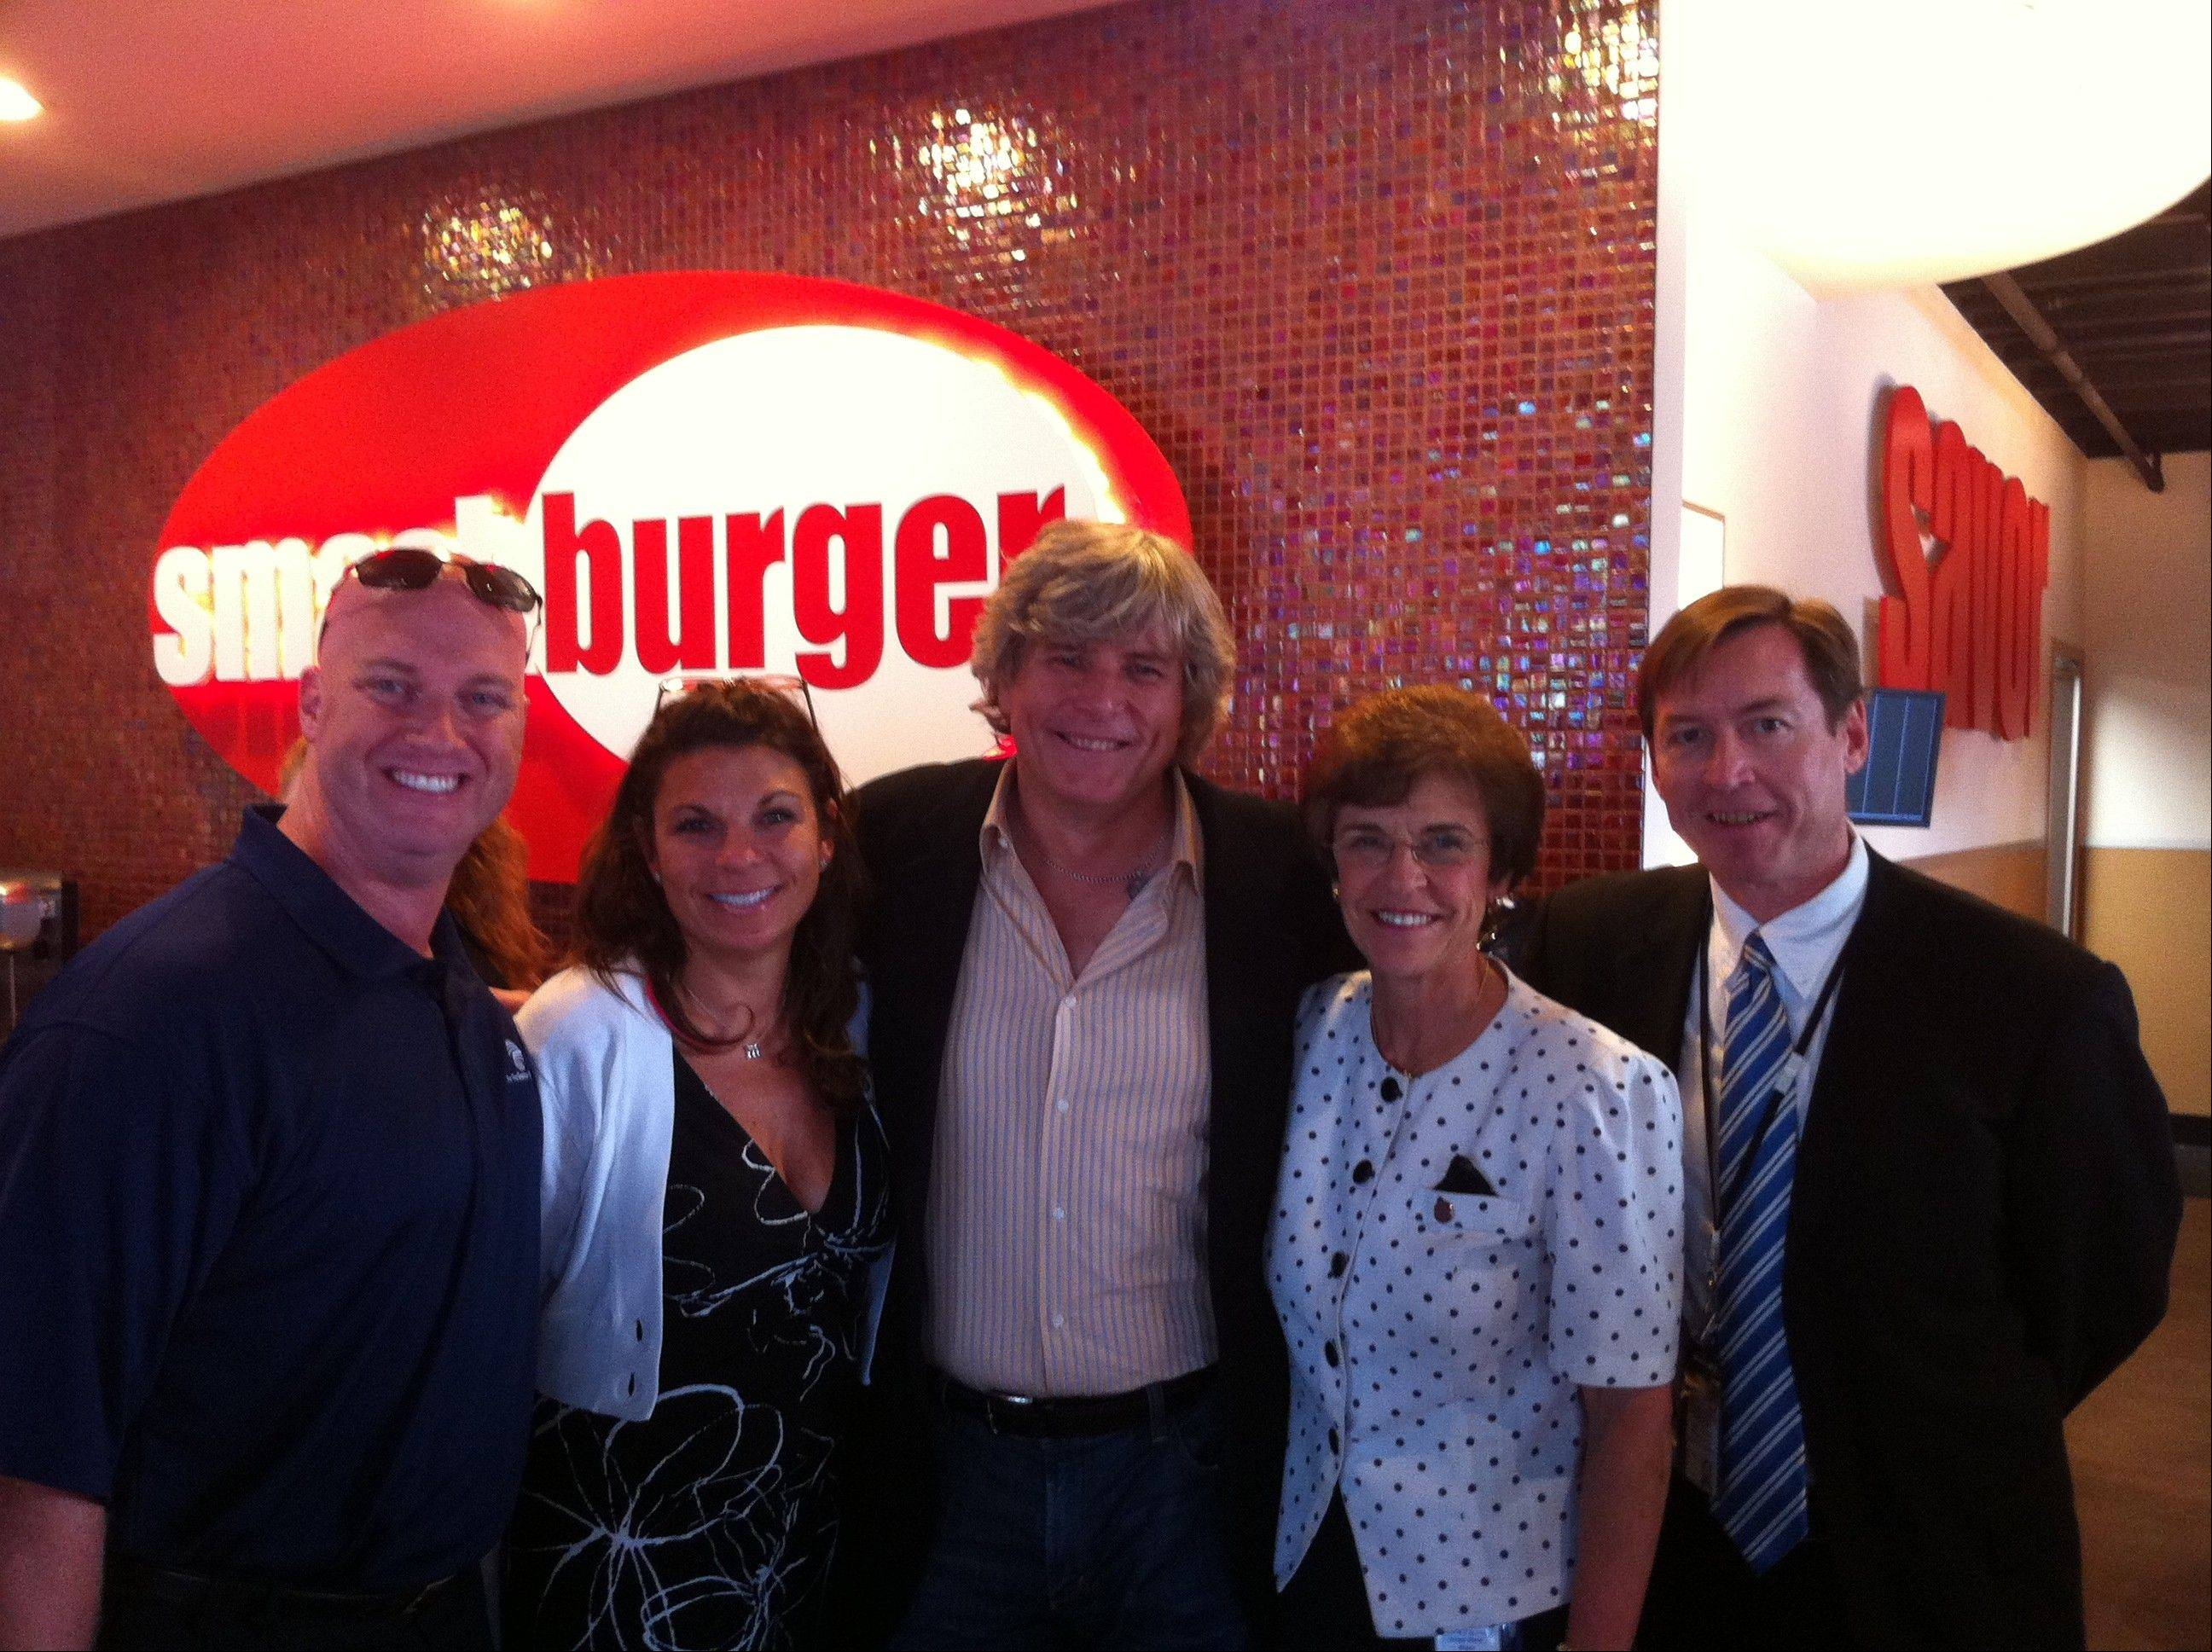 Arlington Heights Chamber of Commerce member Jay Beaton, from left, chamber business development director Mary Beisemann, Smashburger founder Tom Ryan, Arlington Heights Mayor Arlene Mulder, and city planner John Melaniphy were all smiles on opening night of the new Smashburger in town.